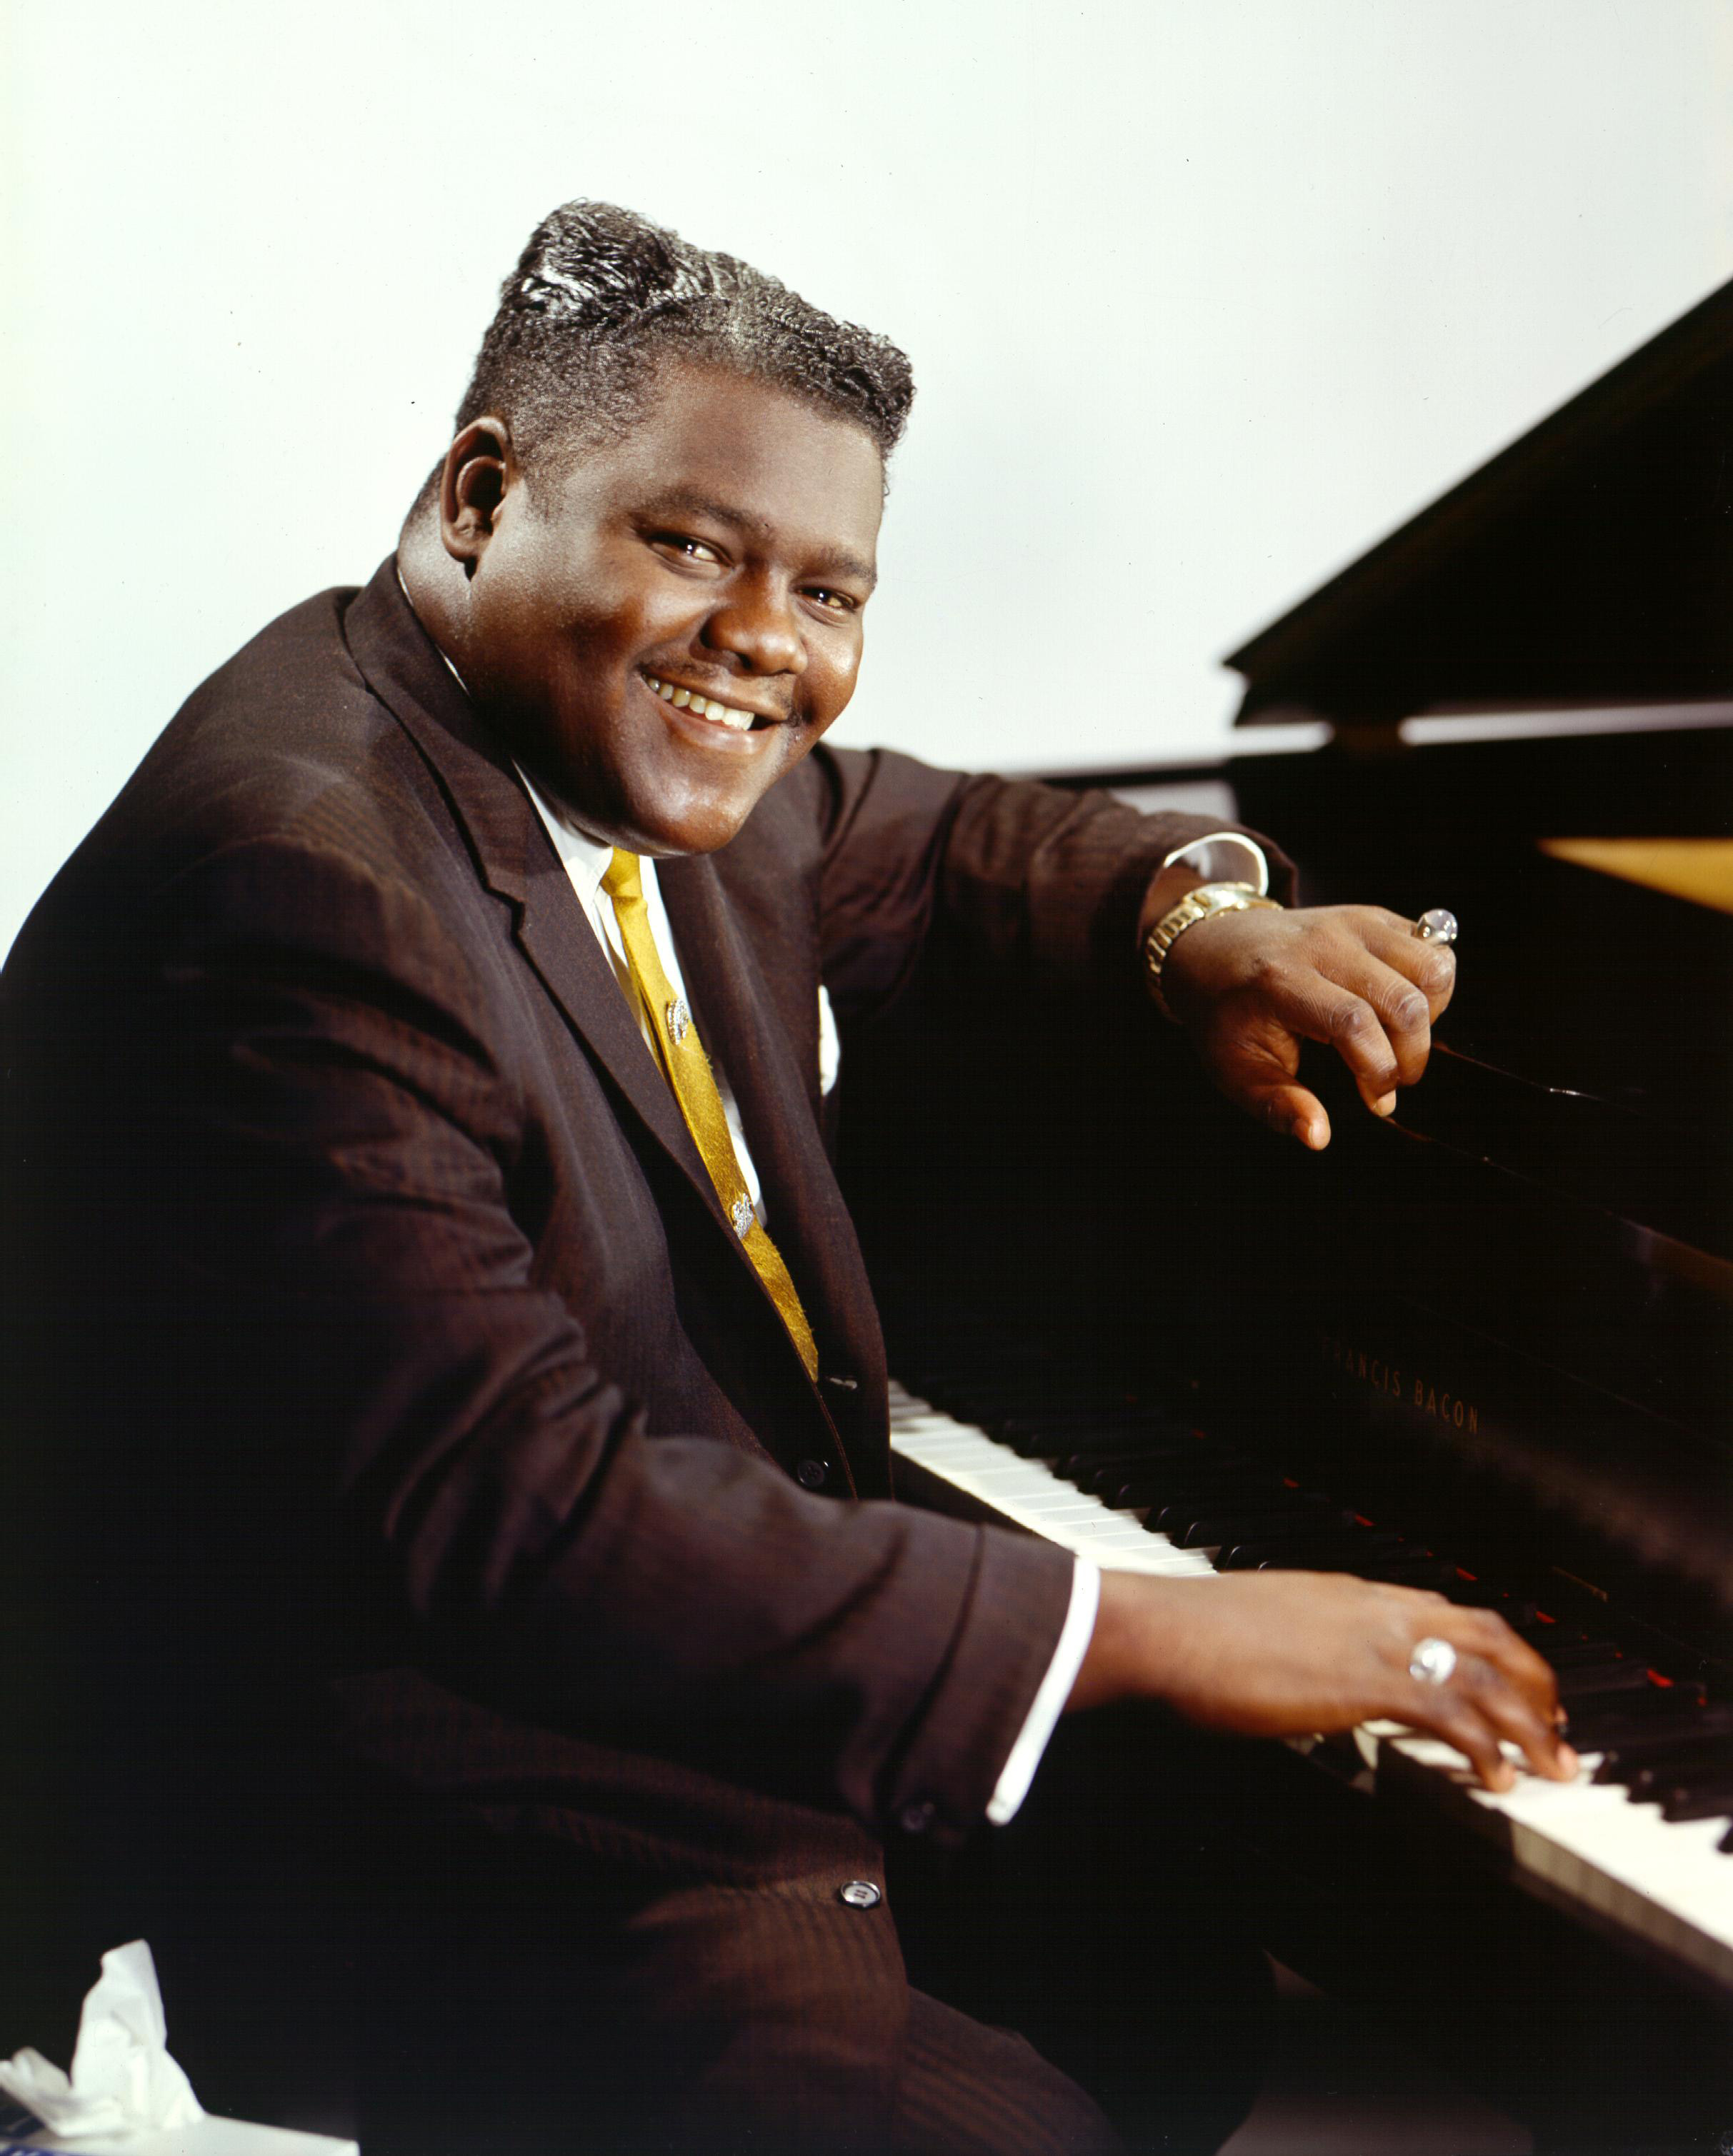 02-Fats_at_Piano.jpg